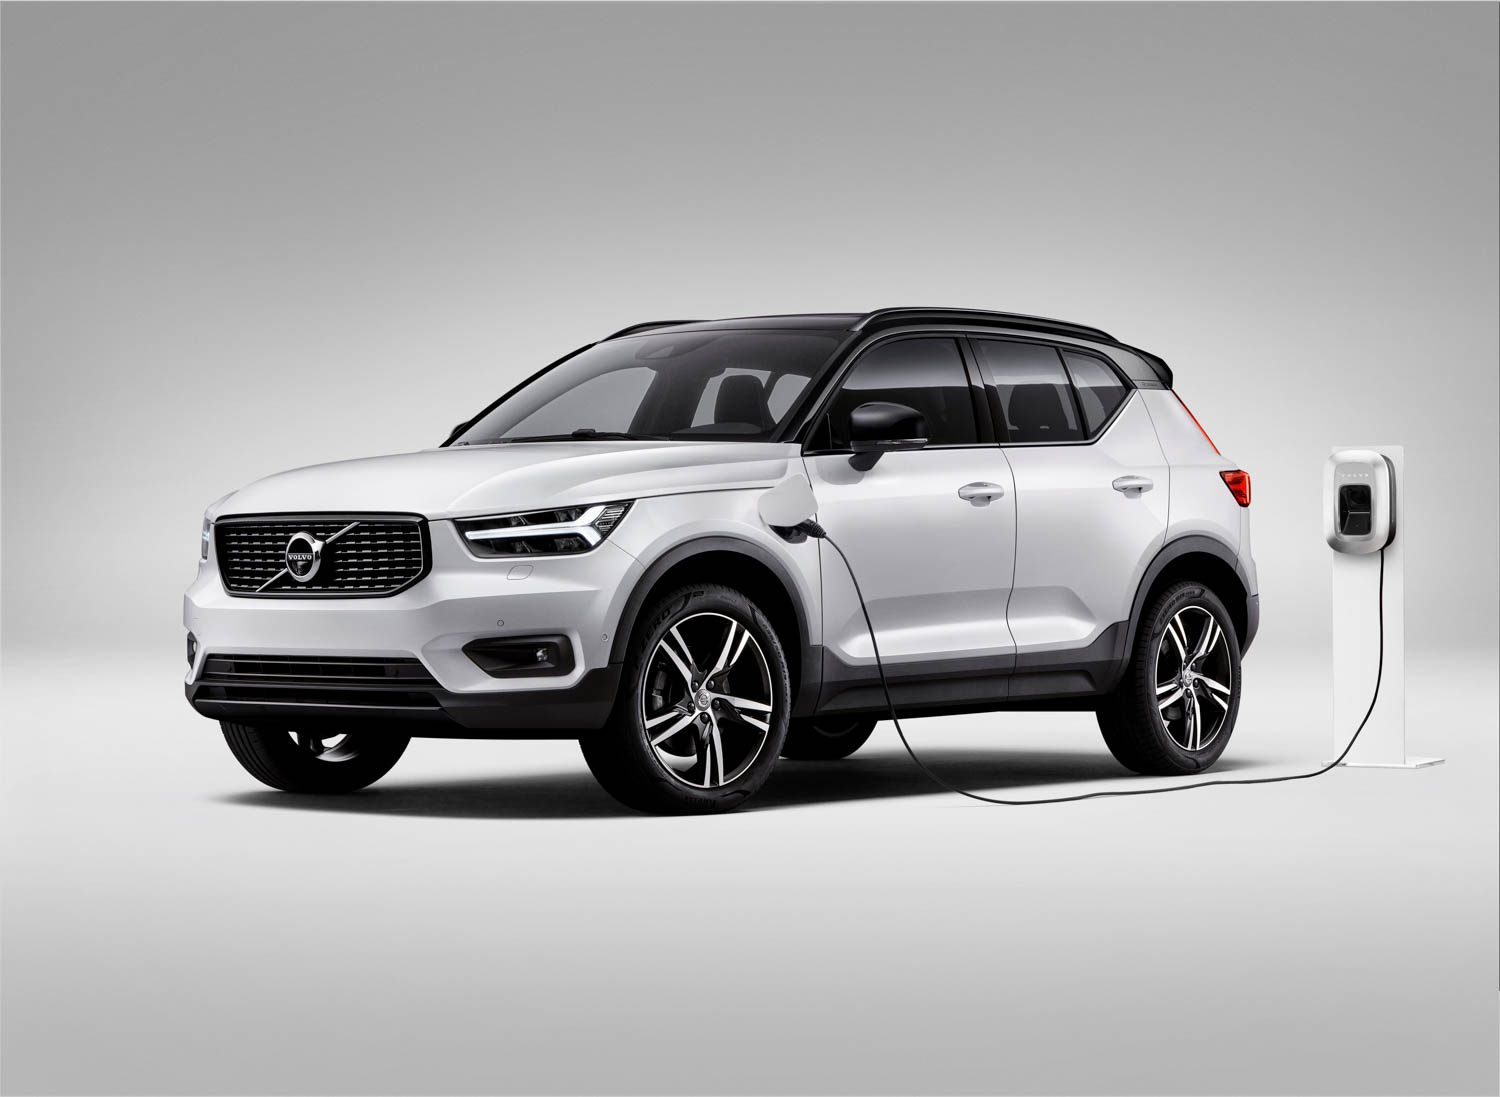 Volvo's first all-electric vehicle will be the XC40 subcompact crossover thumbnail